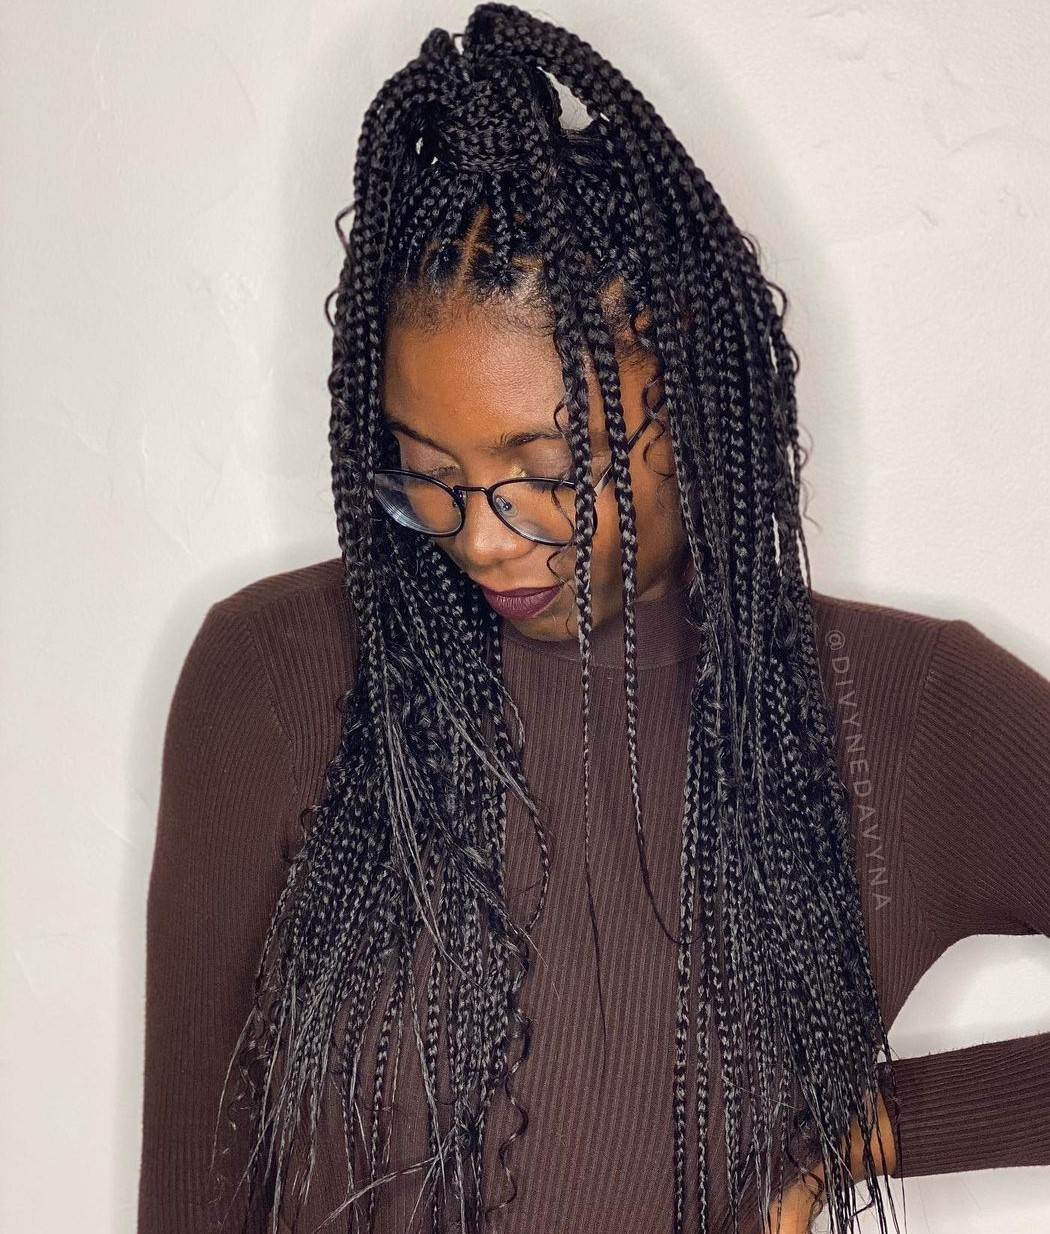 Messy Curly Box Braids in a Pony